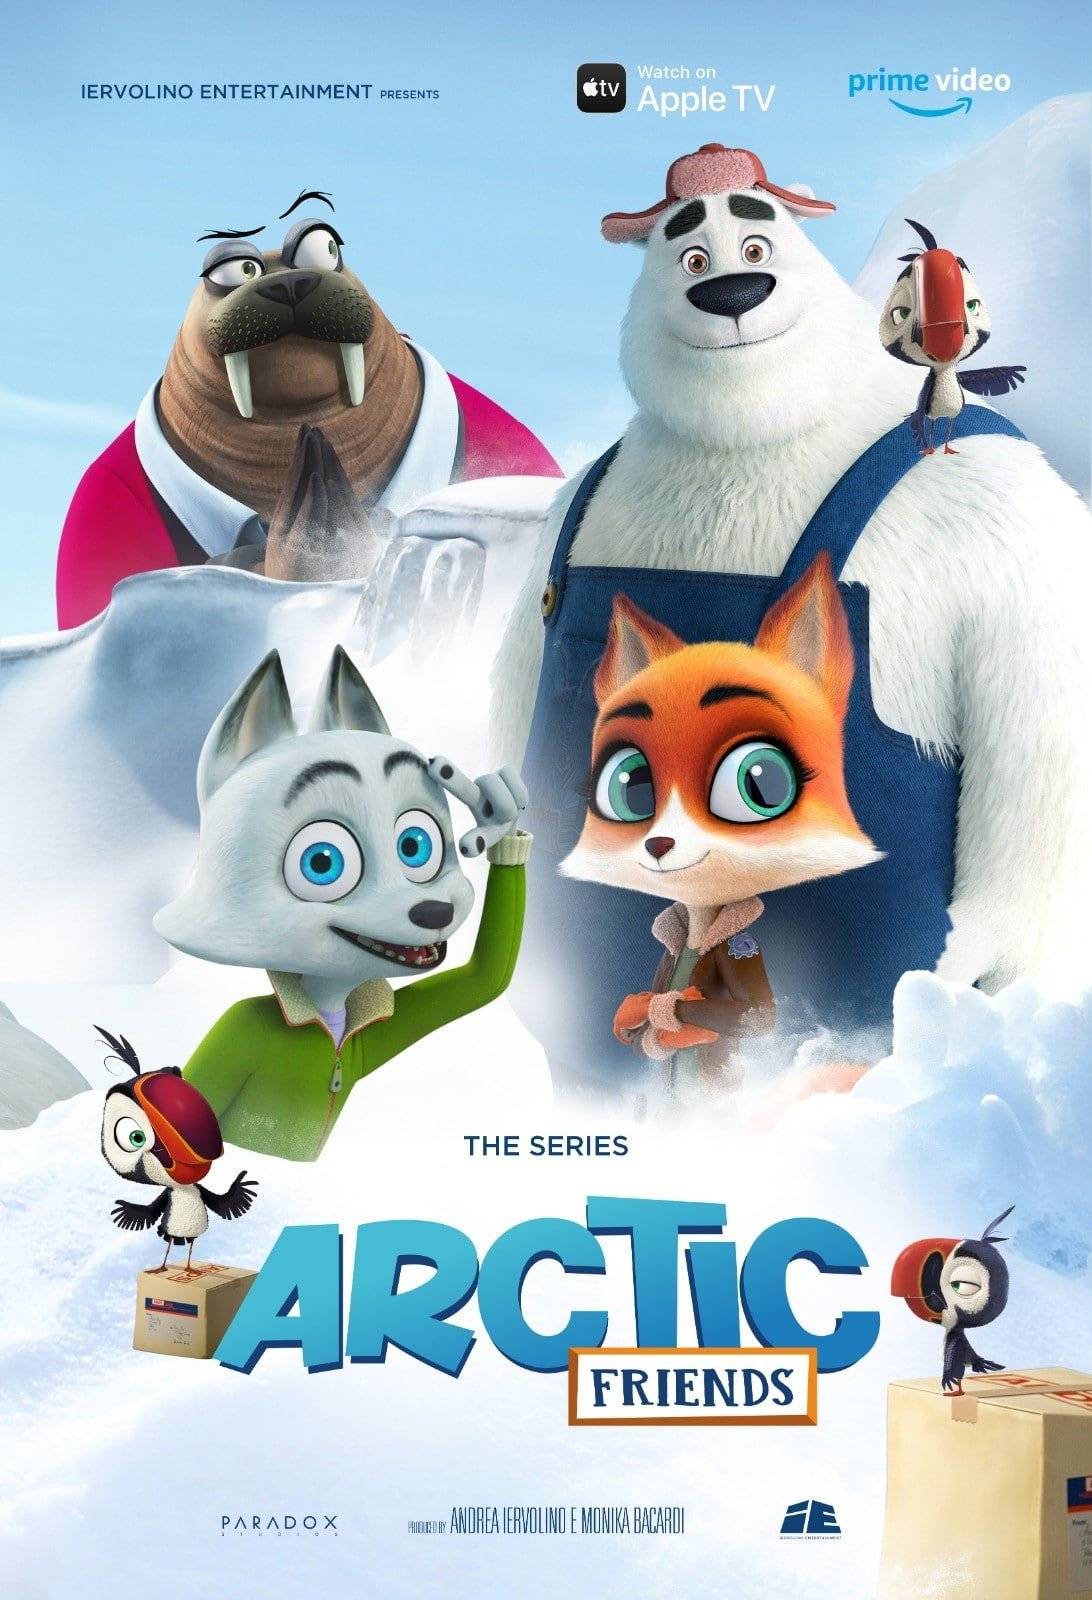 "Arctic Friends Poster. Artic Friends, based on the popular animated film, ""Arctic Dogs,"" is now available to stream on Apple TV and Amazon Prime Video! The original hit film Artic Dogs was released theatrically in 2019 and went on to become one of the top-rated animated films on Netflix."